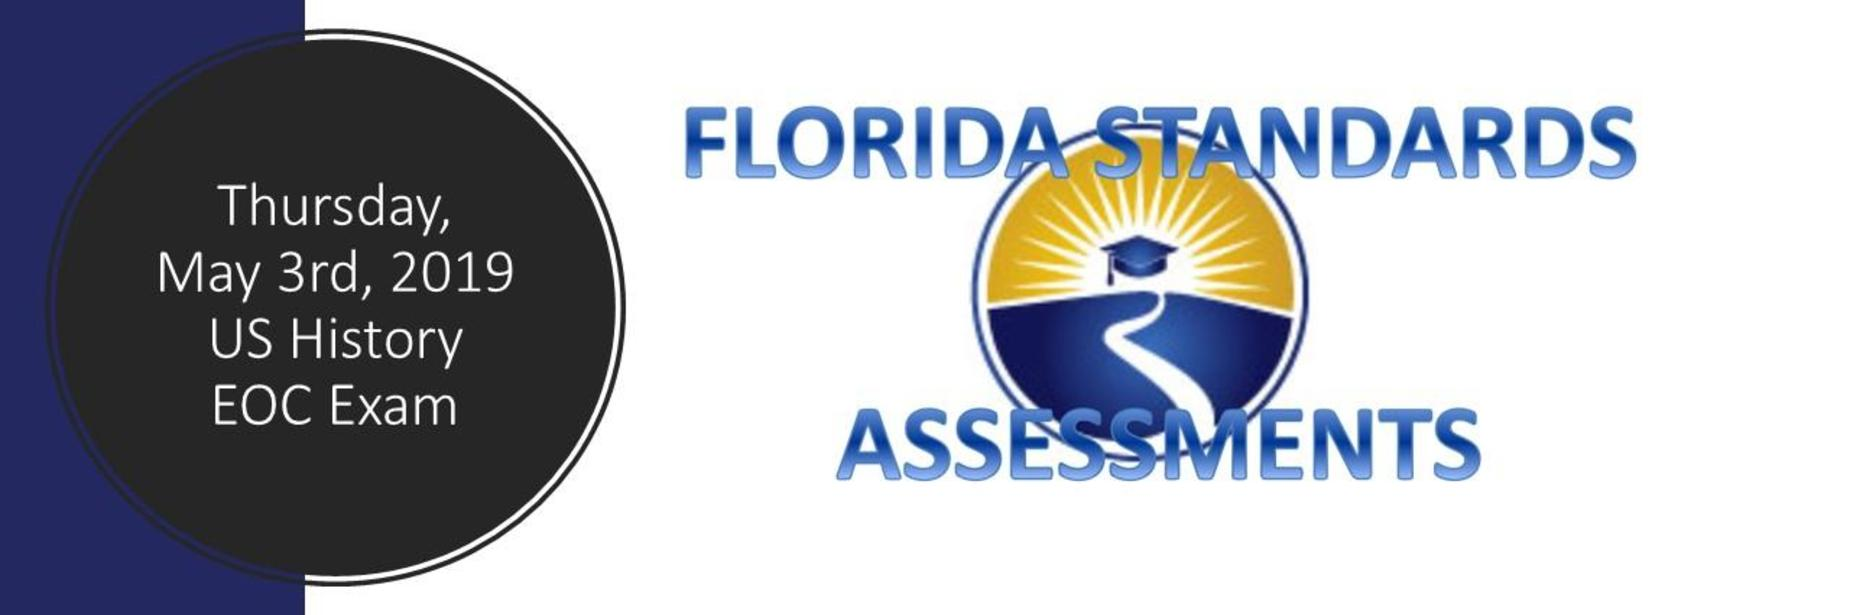 Florida Standards Assessments Thursday, May 3rd, 2019 US History EOC Exam